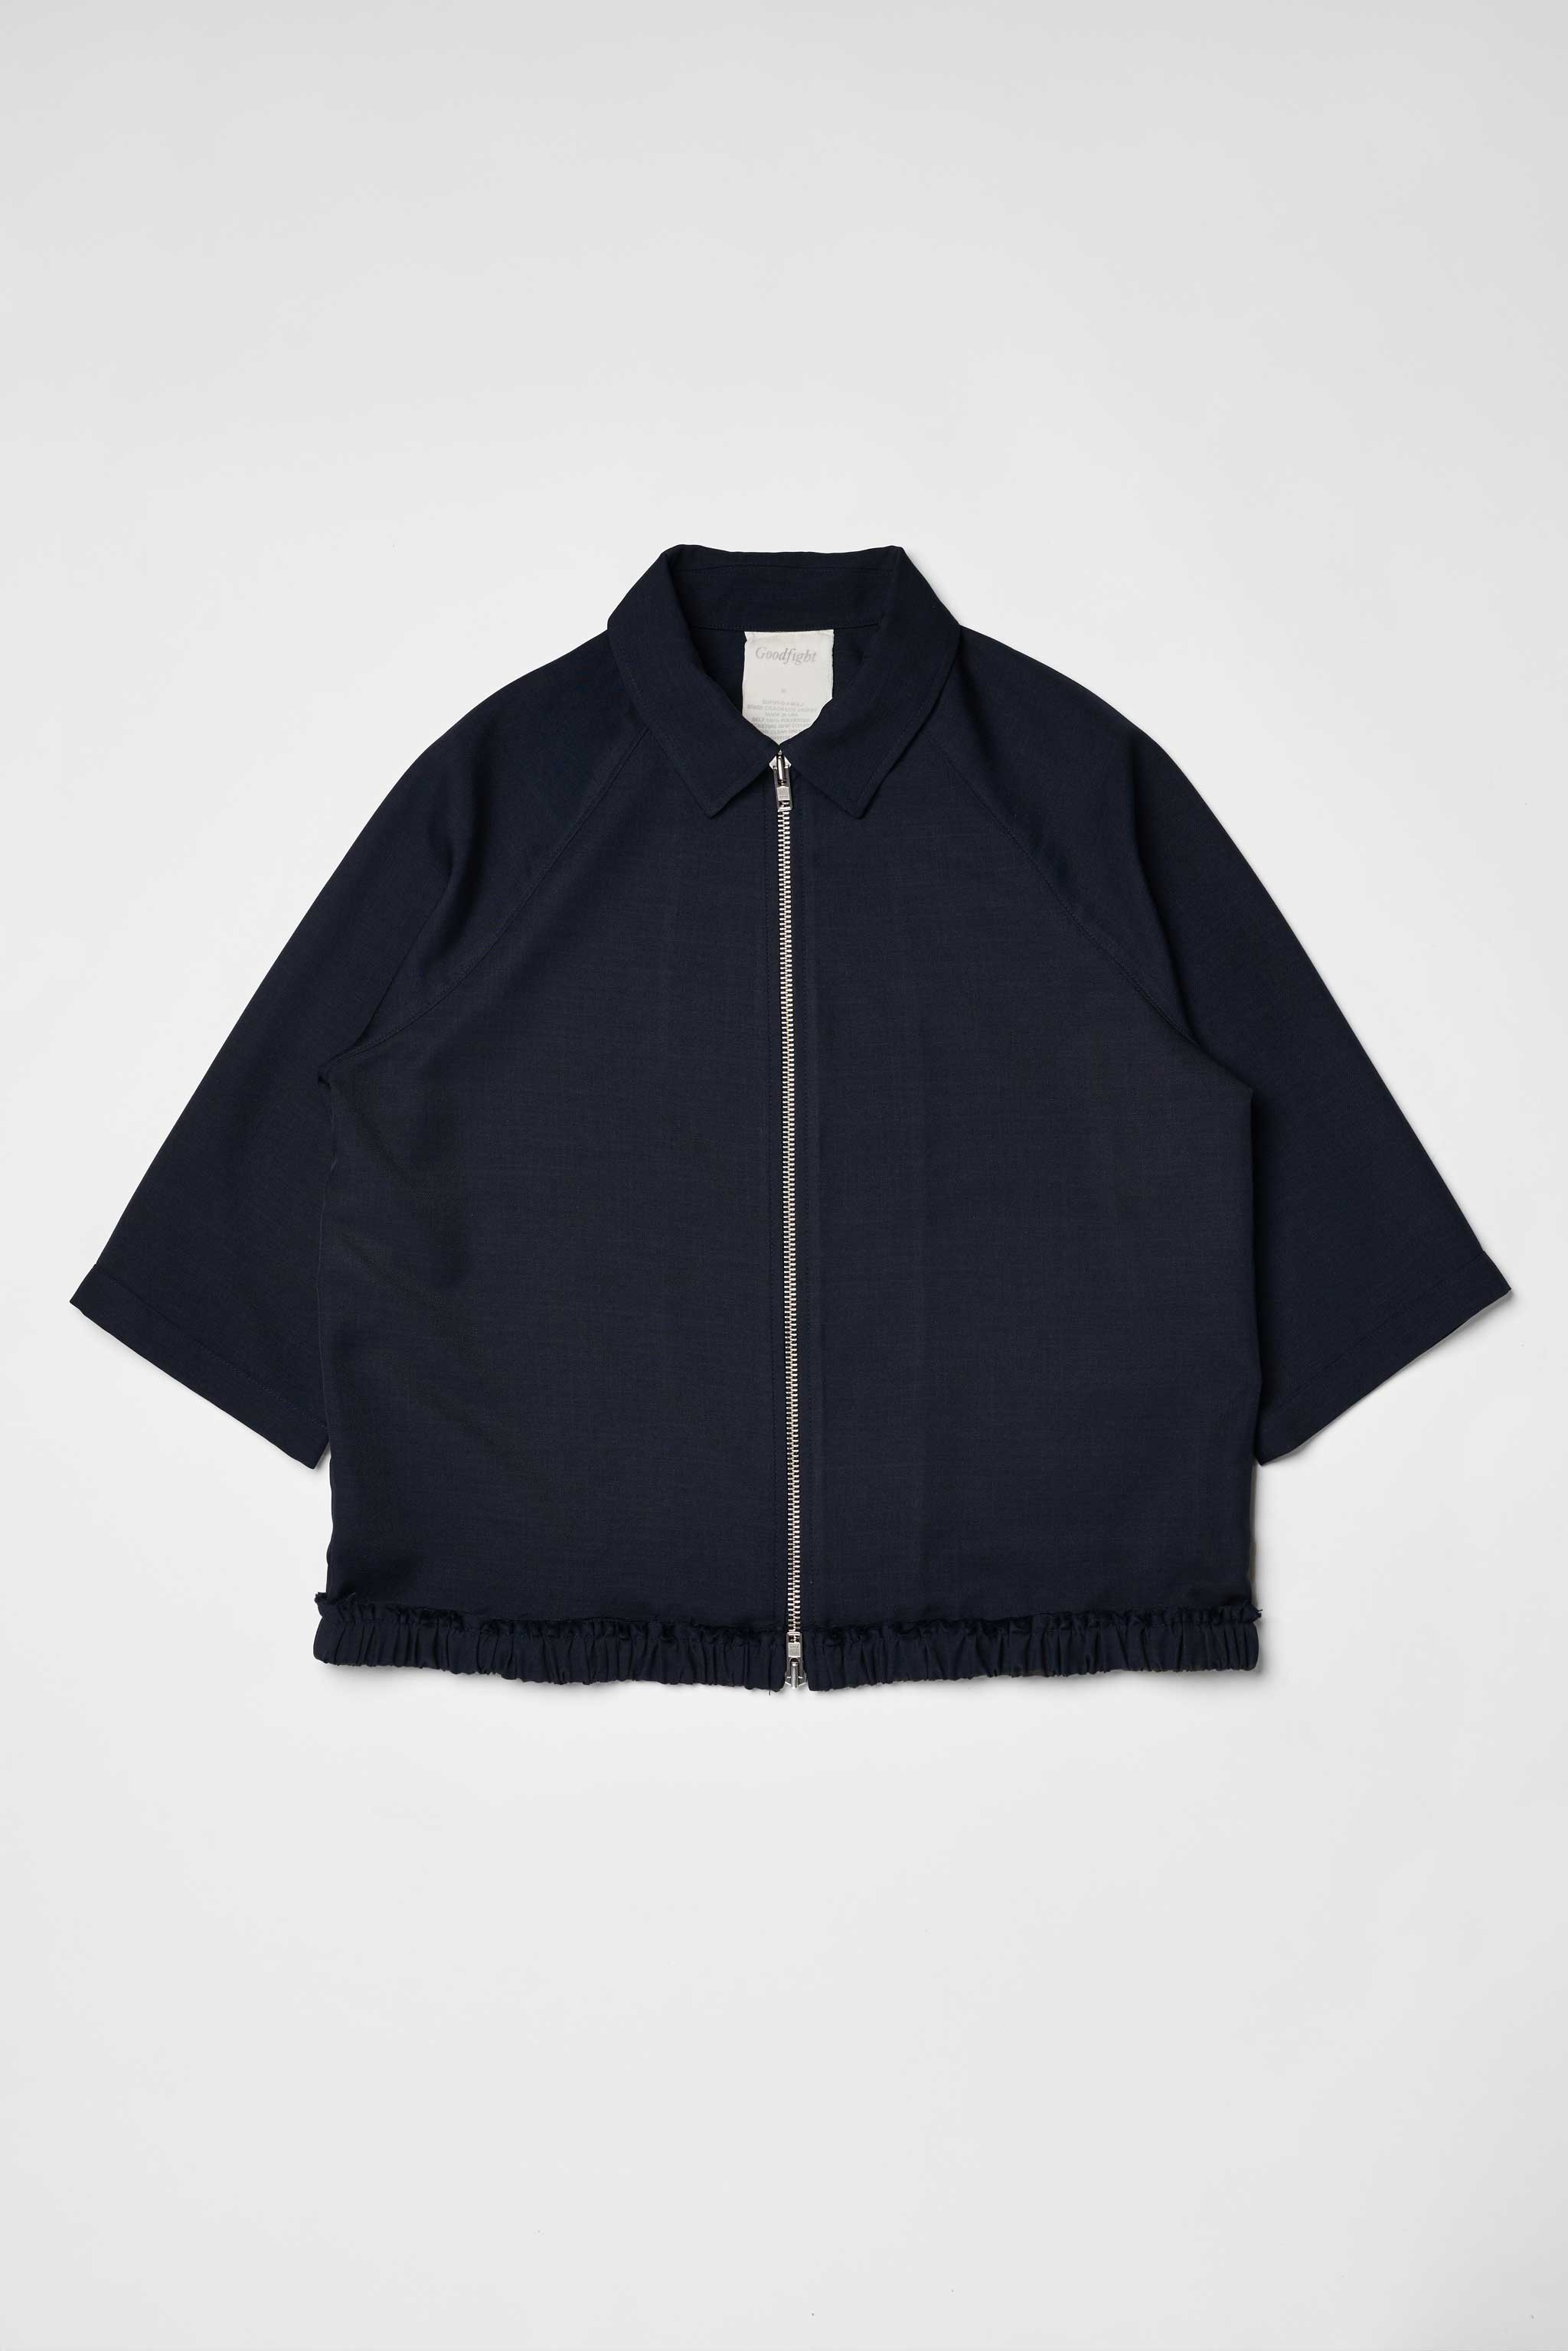 Goodfight Stage Coach Lite Jacket Navy